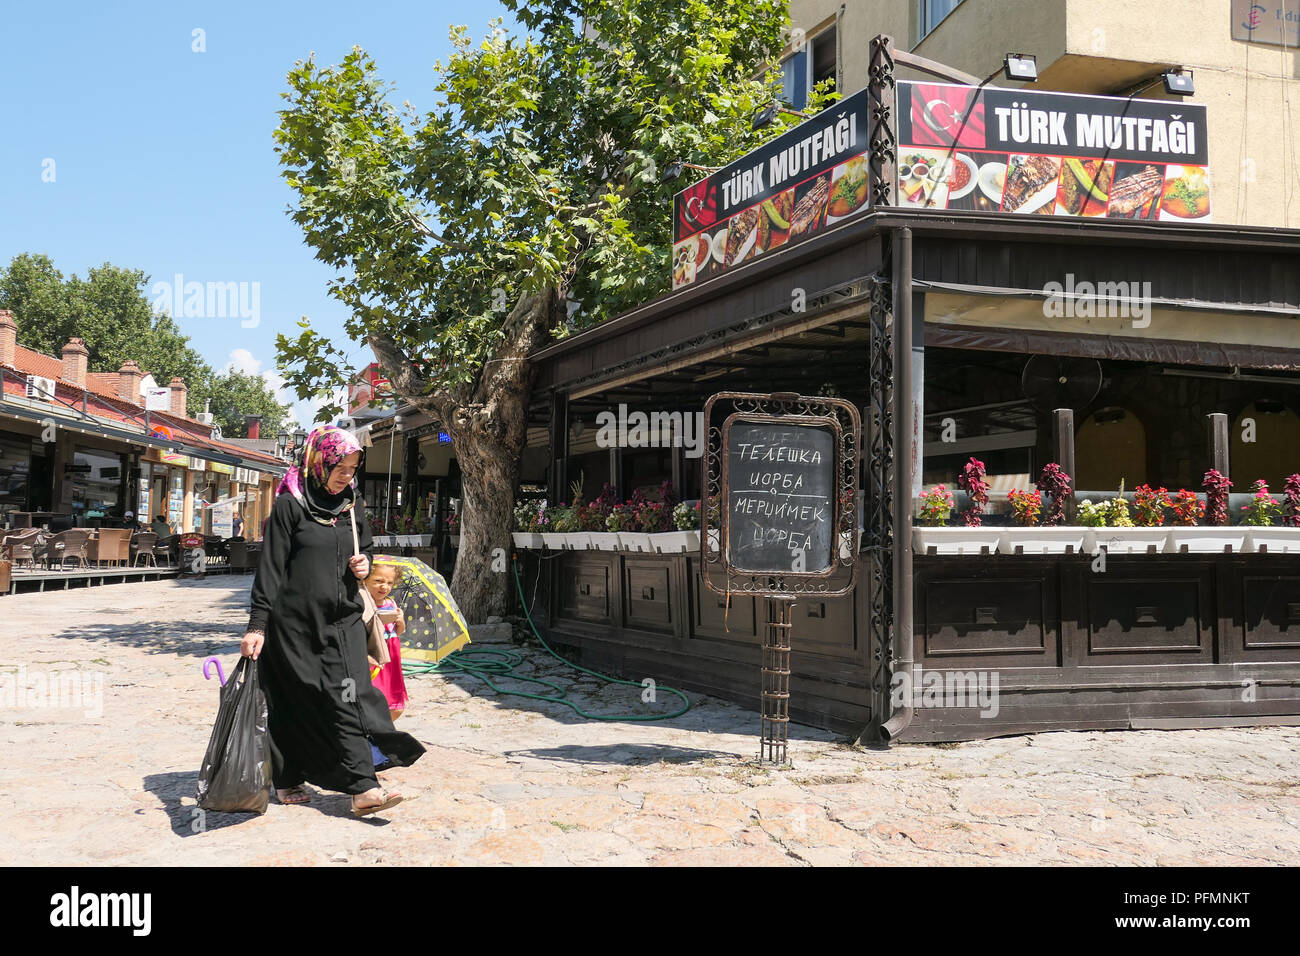 Skopje Old Bazaar - Muslim woman and small child walking past a Turkish food shop or restaurant, Skopje, Macedonia - Stock Image